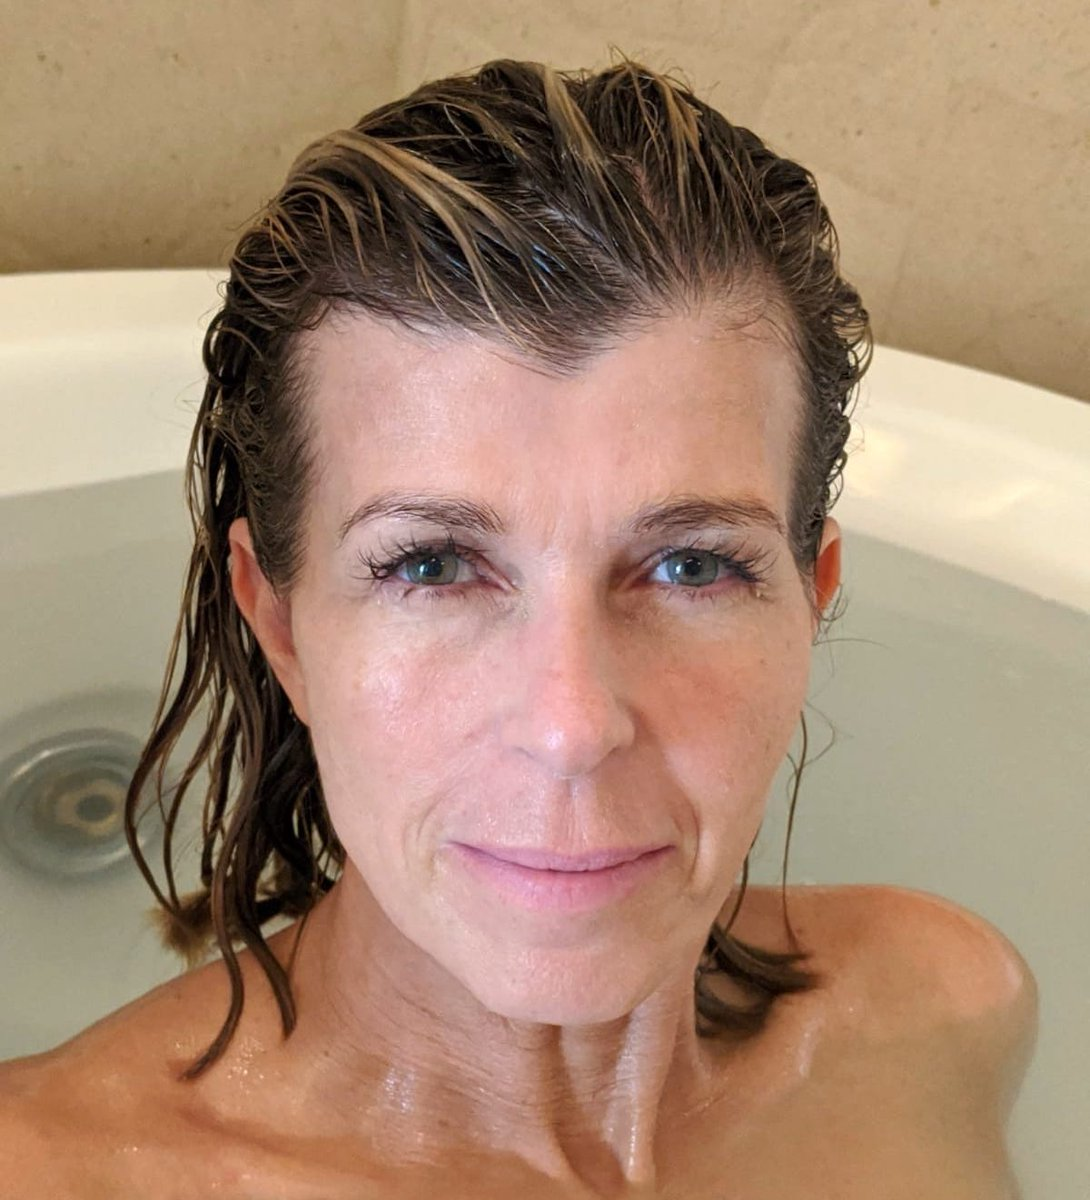 FIRST BATH! Clean hair, clean body HOT WATER! The things you take for granted eh! Never again!! #TeamKate #sograteful #loveyouall #ImACeleb  #ImACelebrity  <br>http://pic.twitter.com/Z8IYEAz9Mo